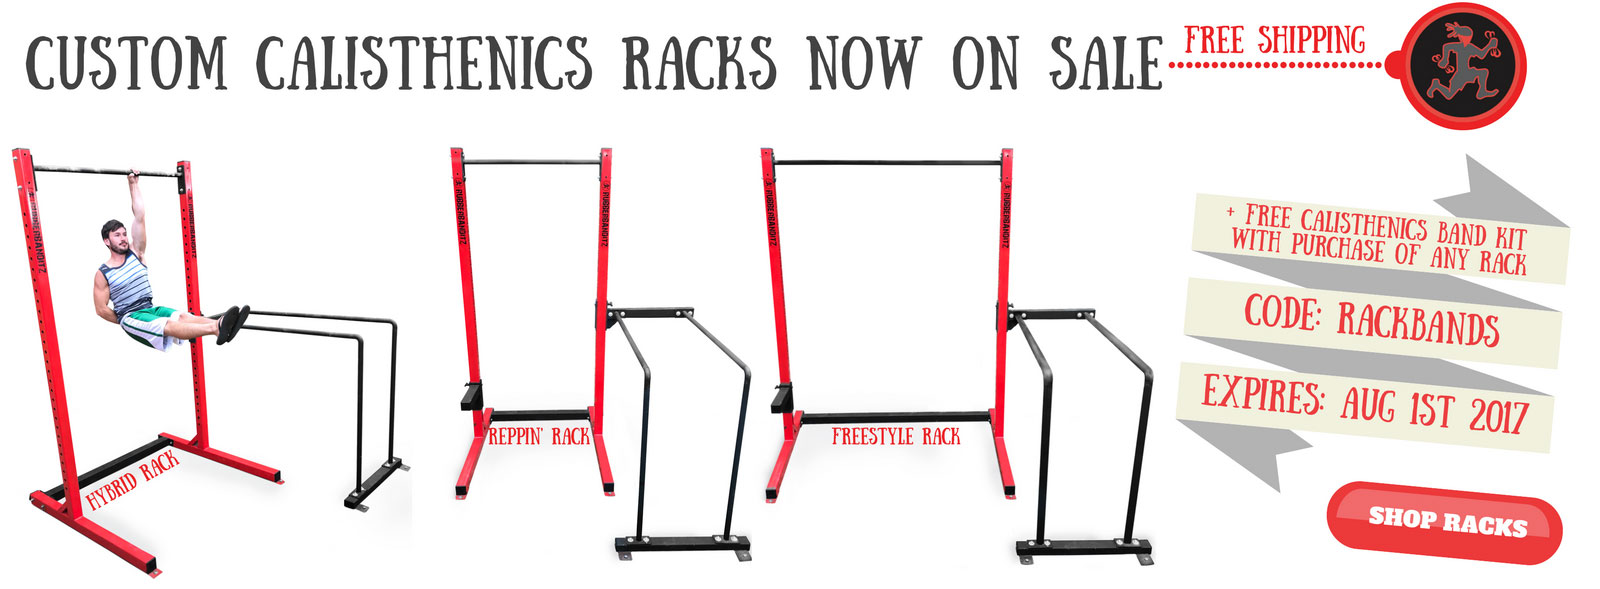 Calisthenics Racks - free calisthenics band kit with any purchase, code rackbands